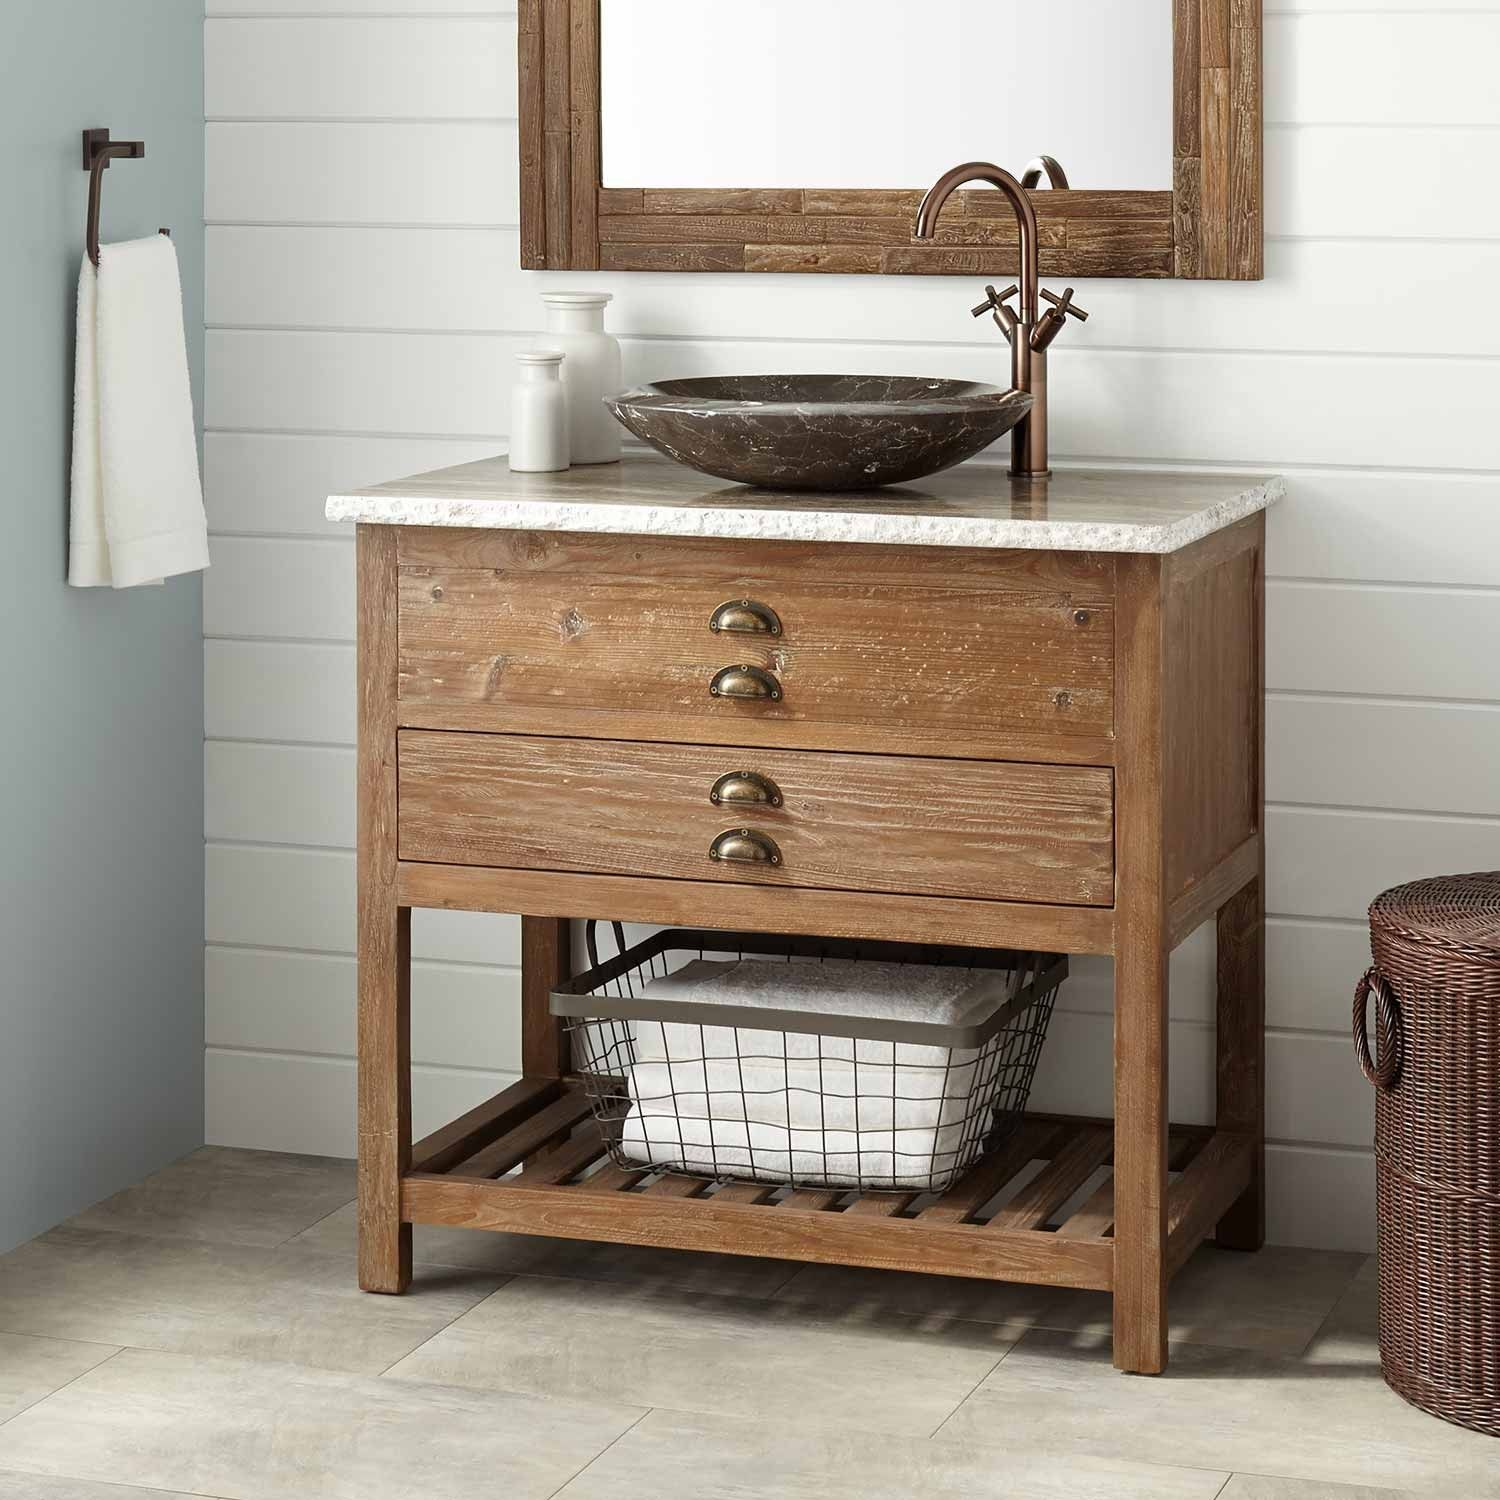 36 Benoist Reclaimed Wood Vessel Sink Vanity Pine Vanities Bathroom